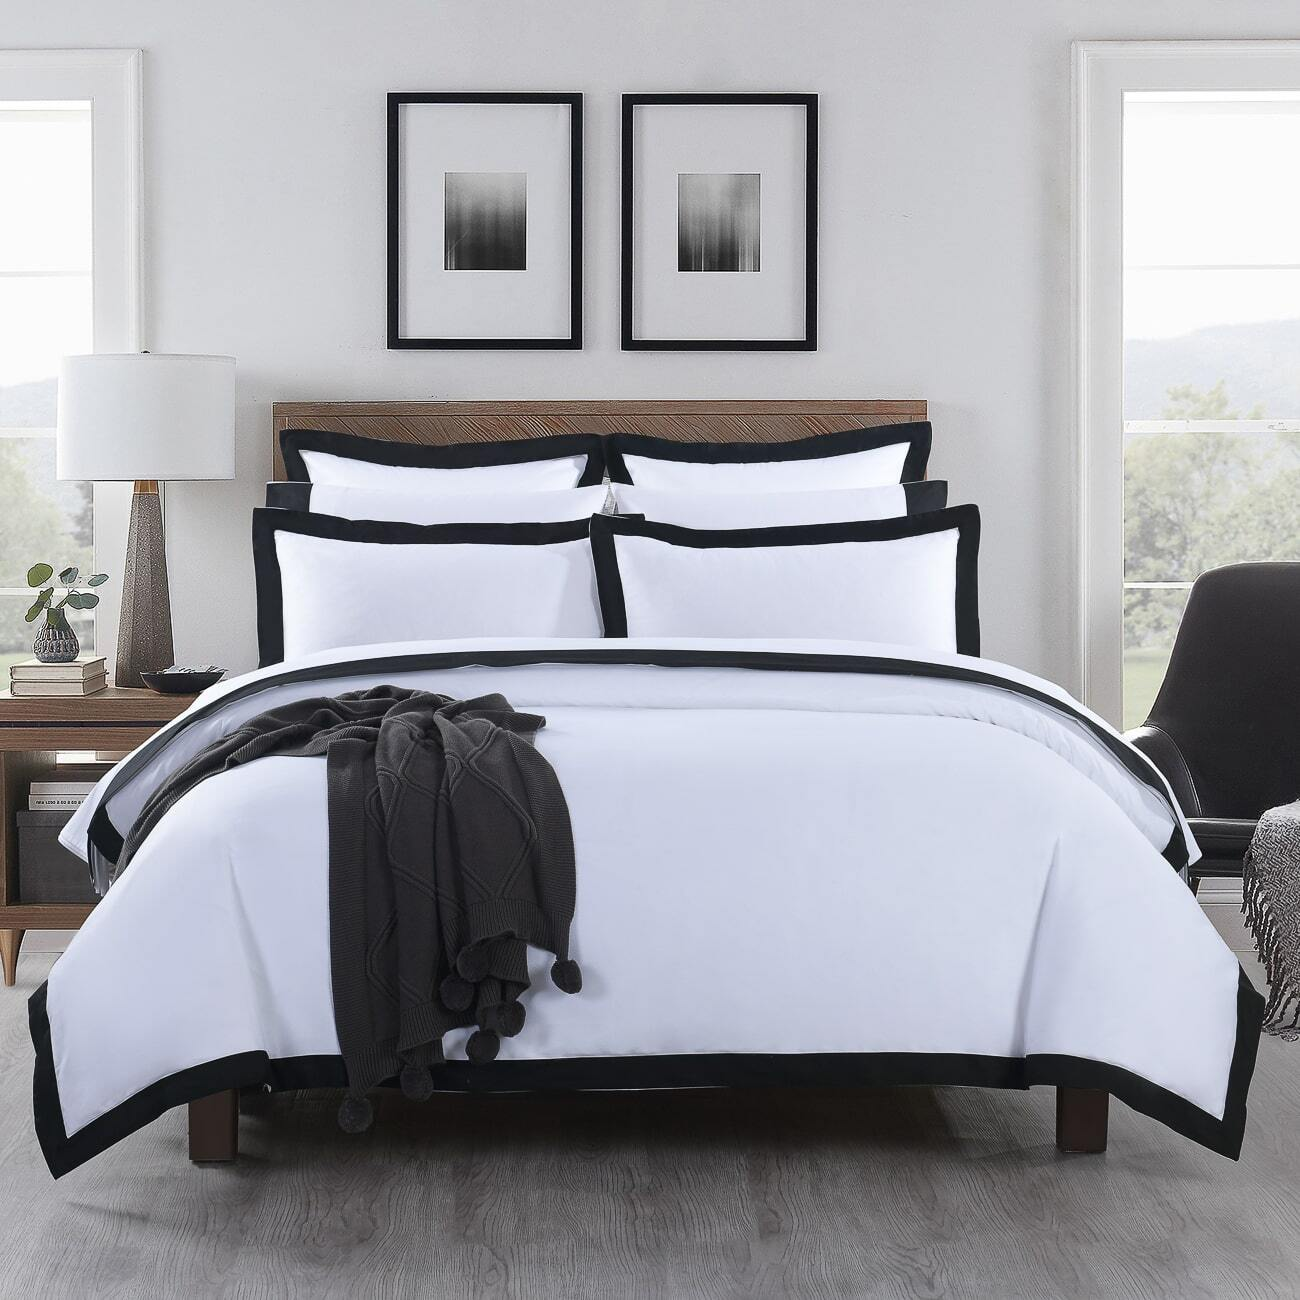 Plaza Black - 1000TC Cotton Quilt Cover Set